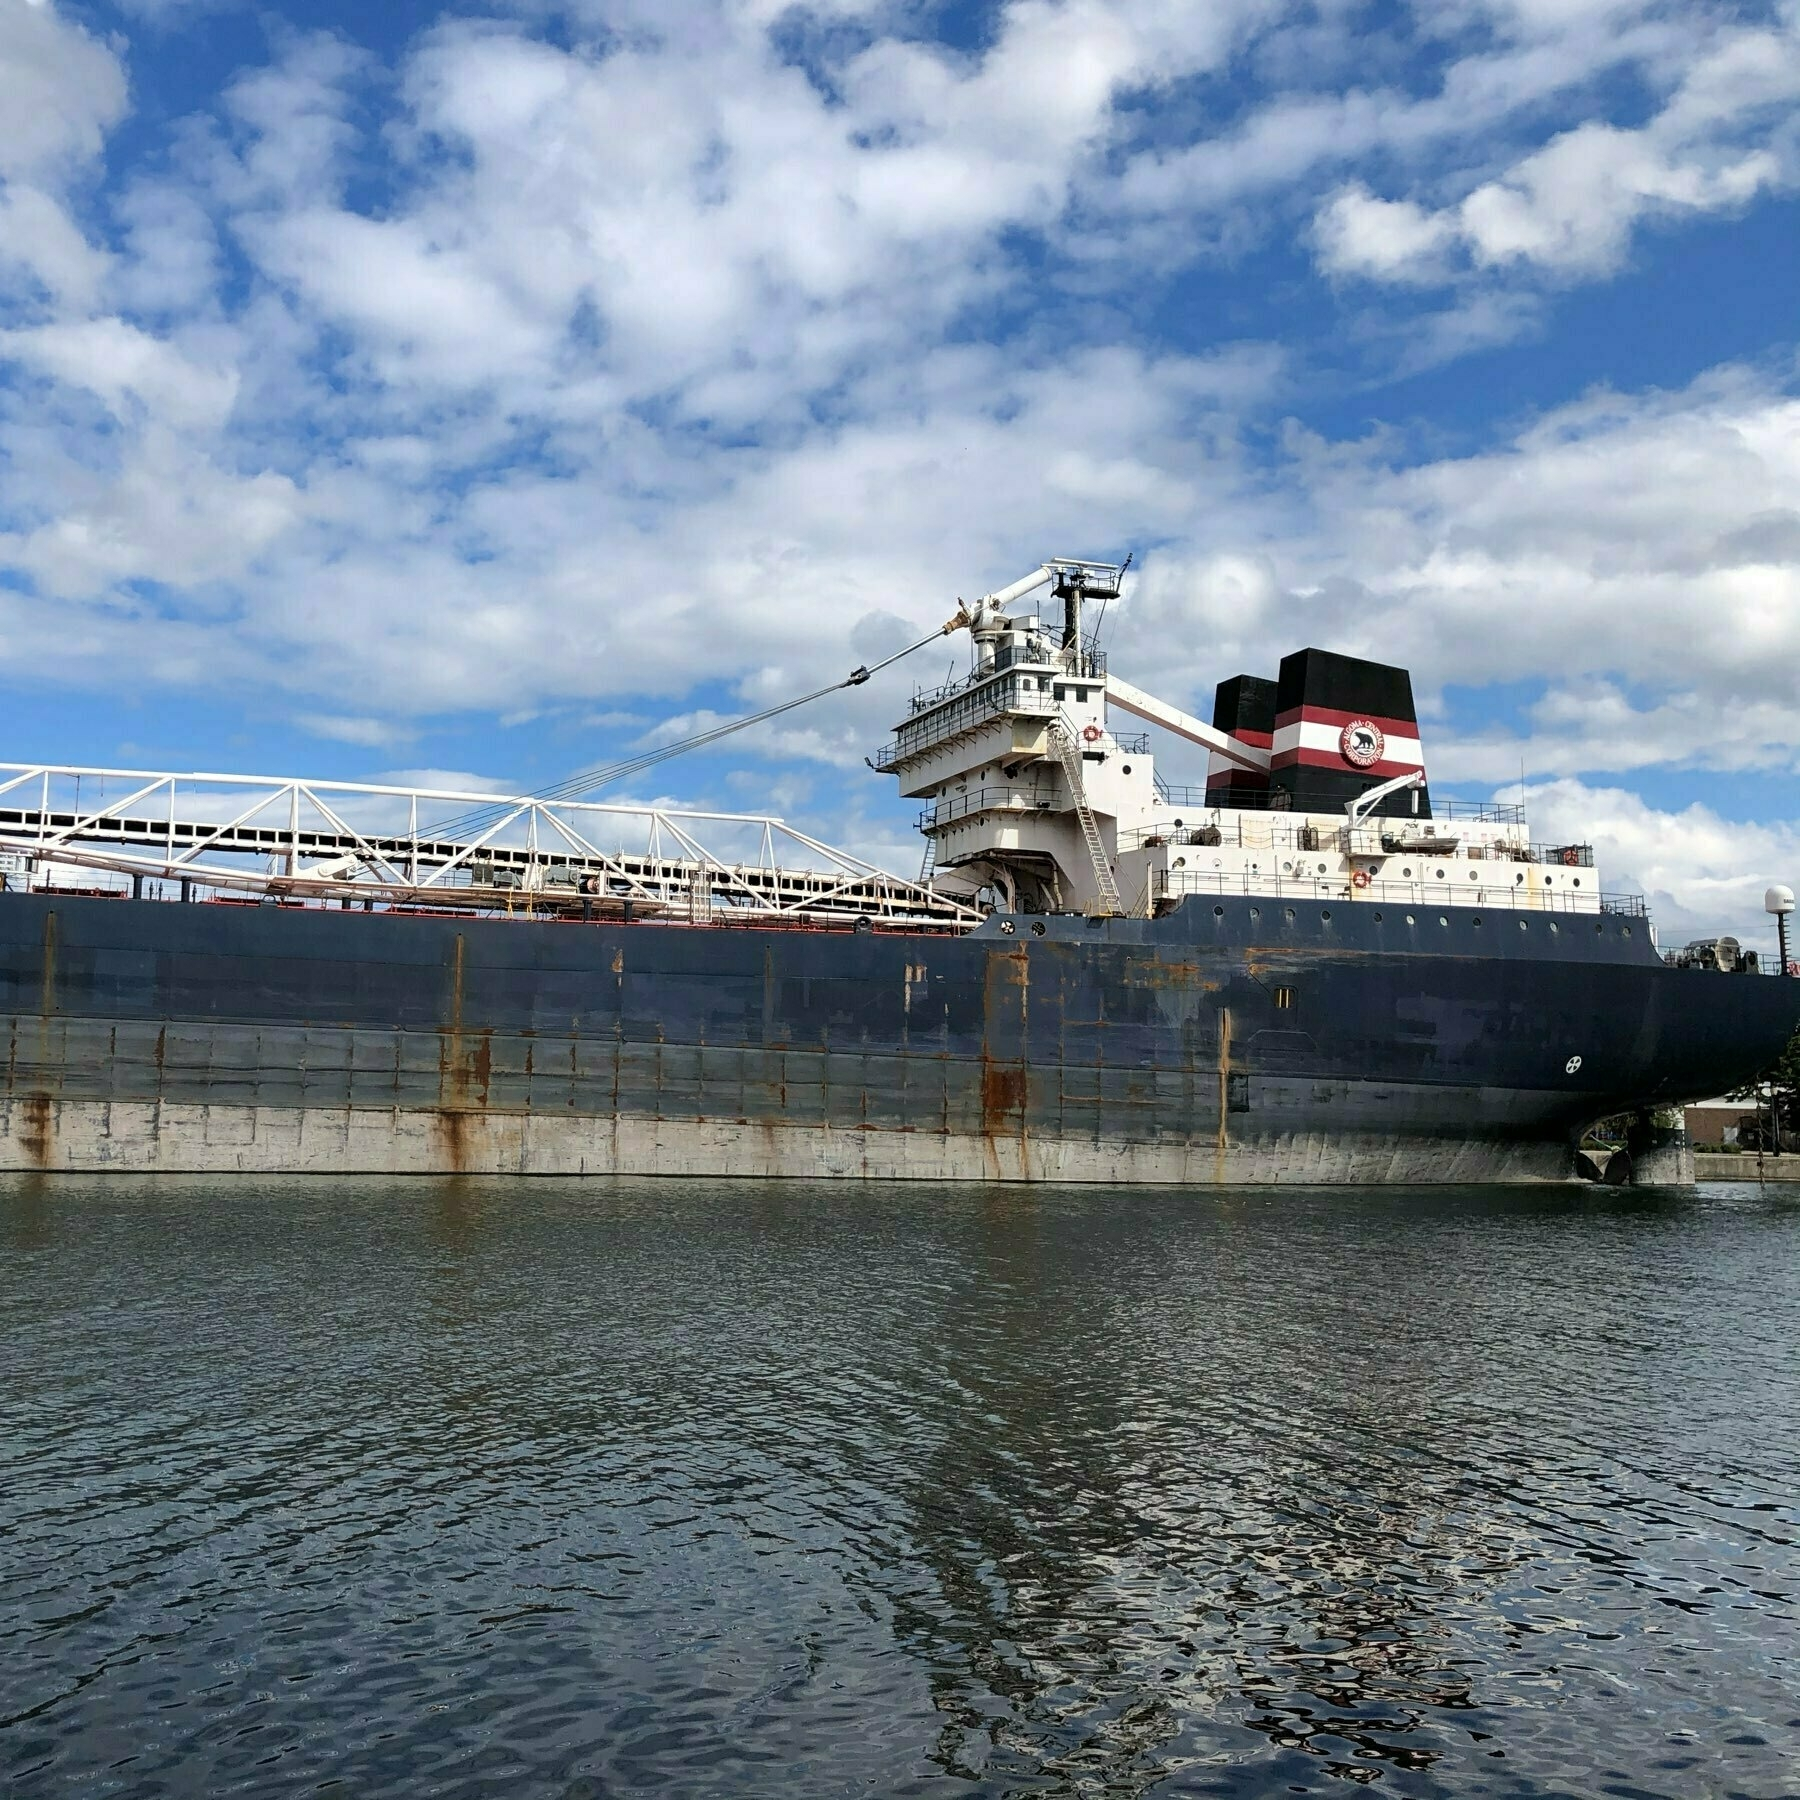 the back third of a great lakes freighter moored in a harbour. vertical and horizontal lines delineate steel panels on its black side